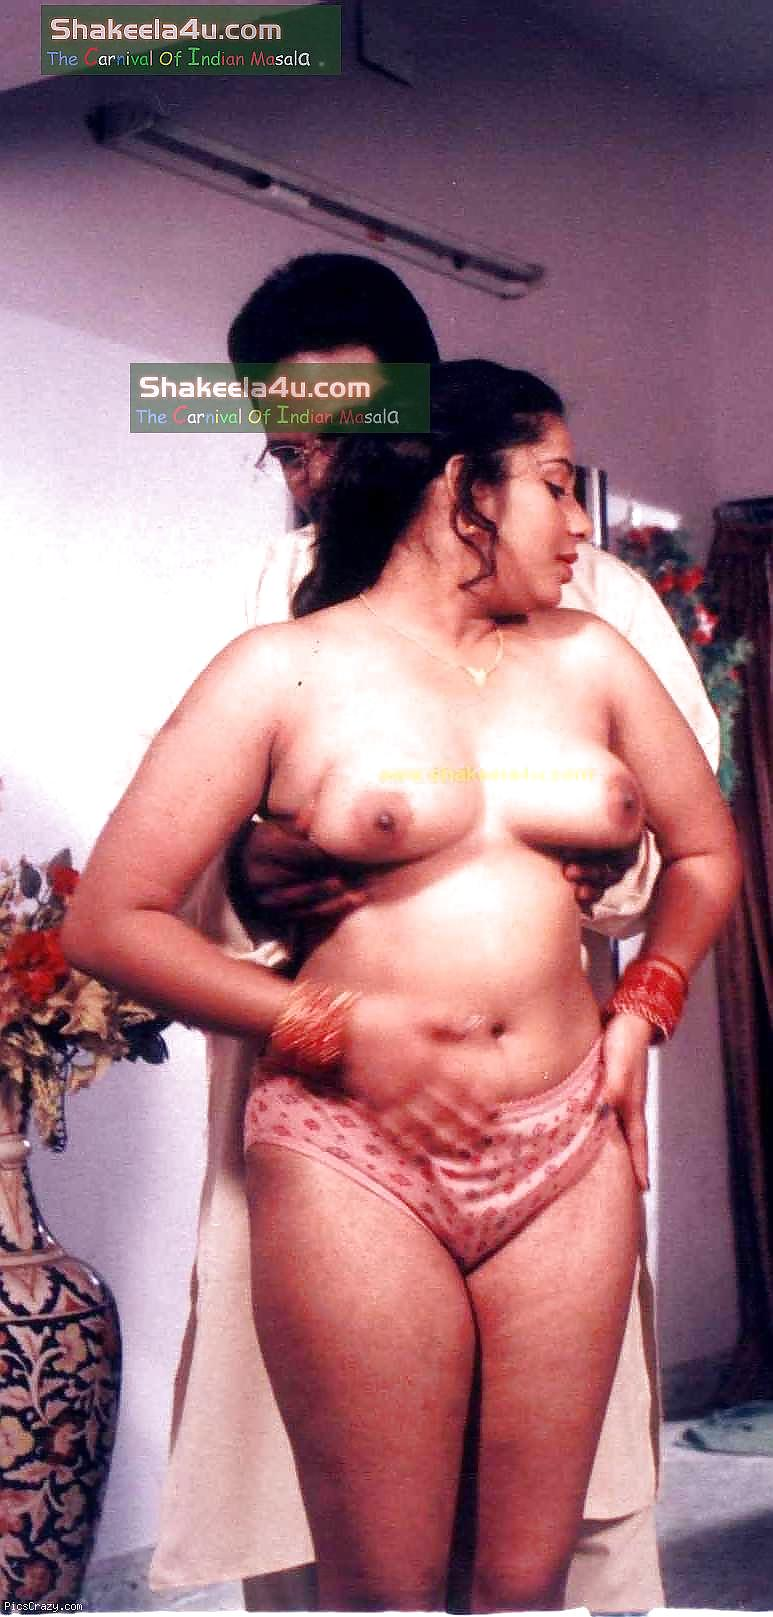 Mallu actress maria sex vedio